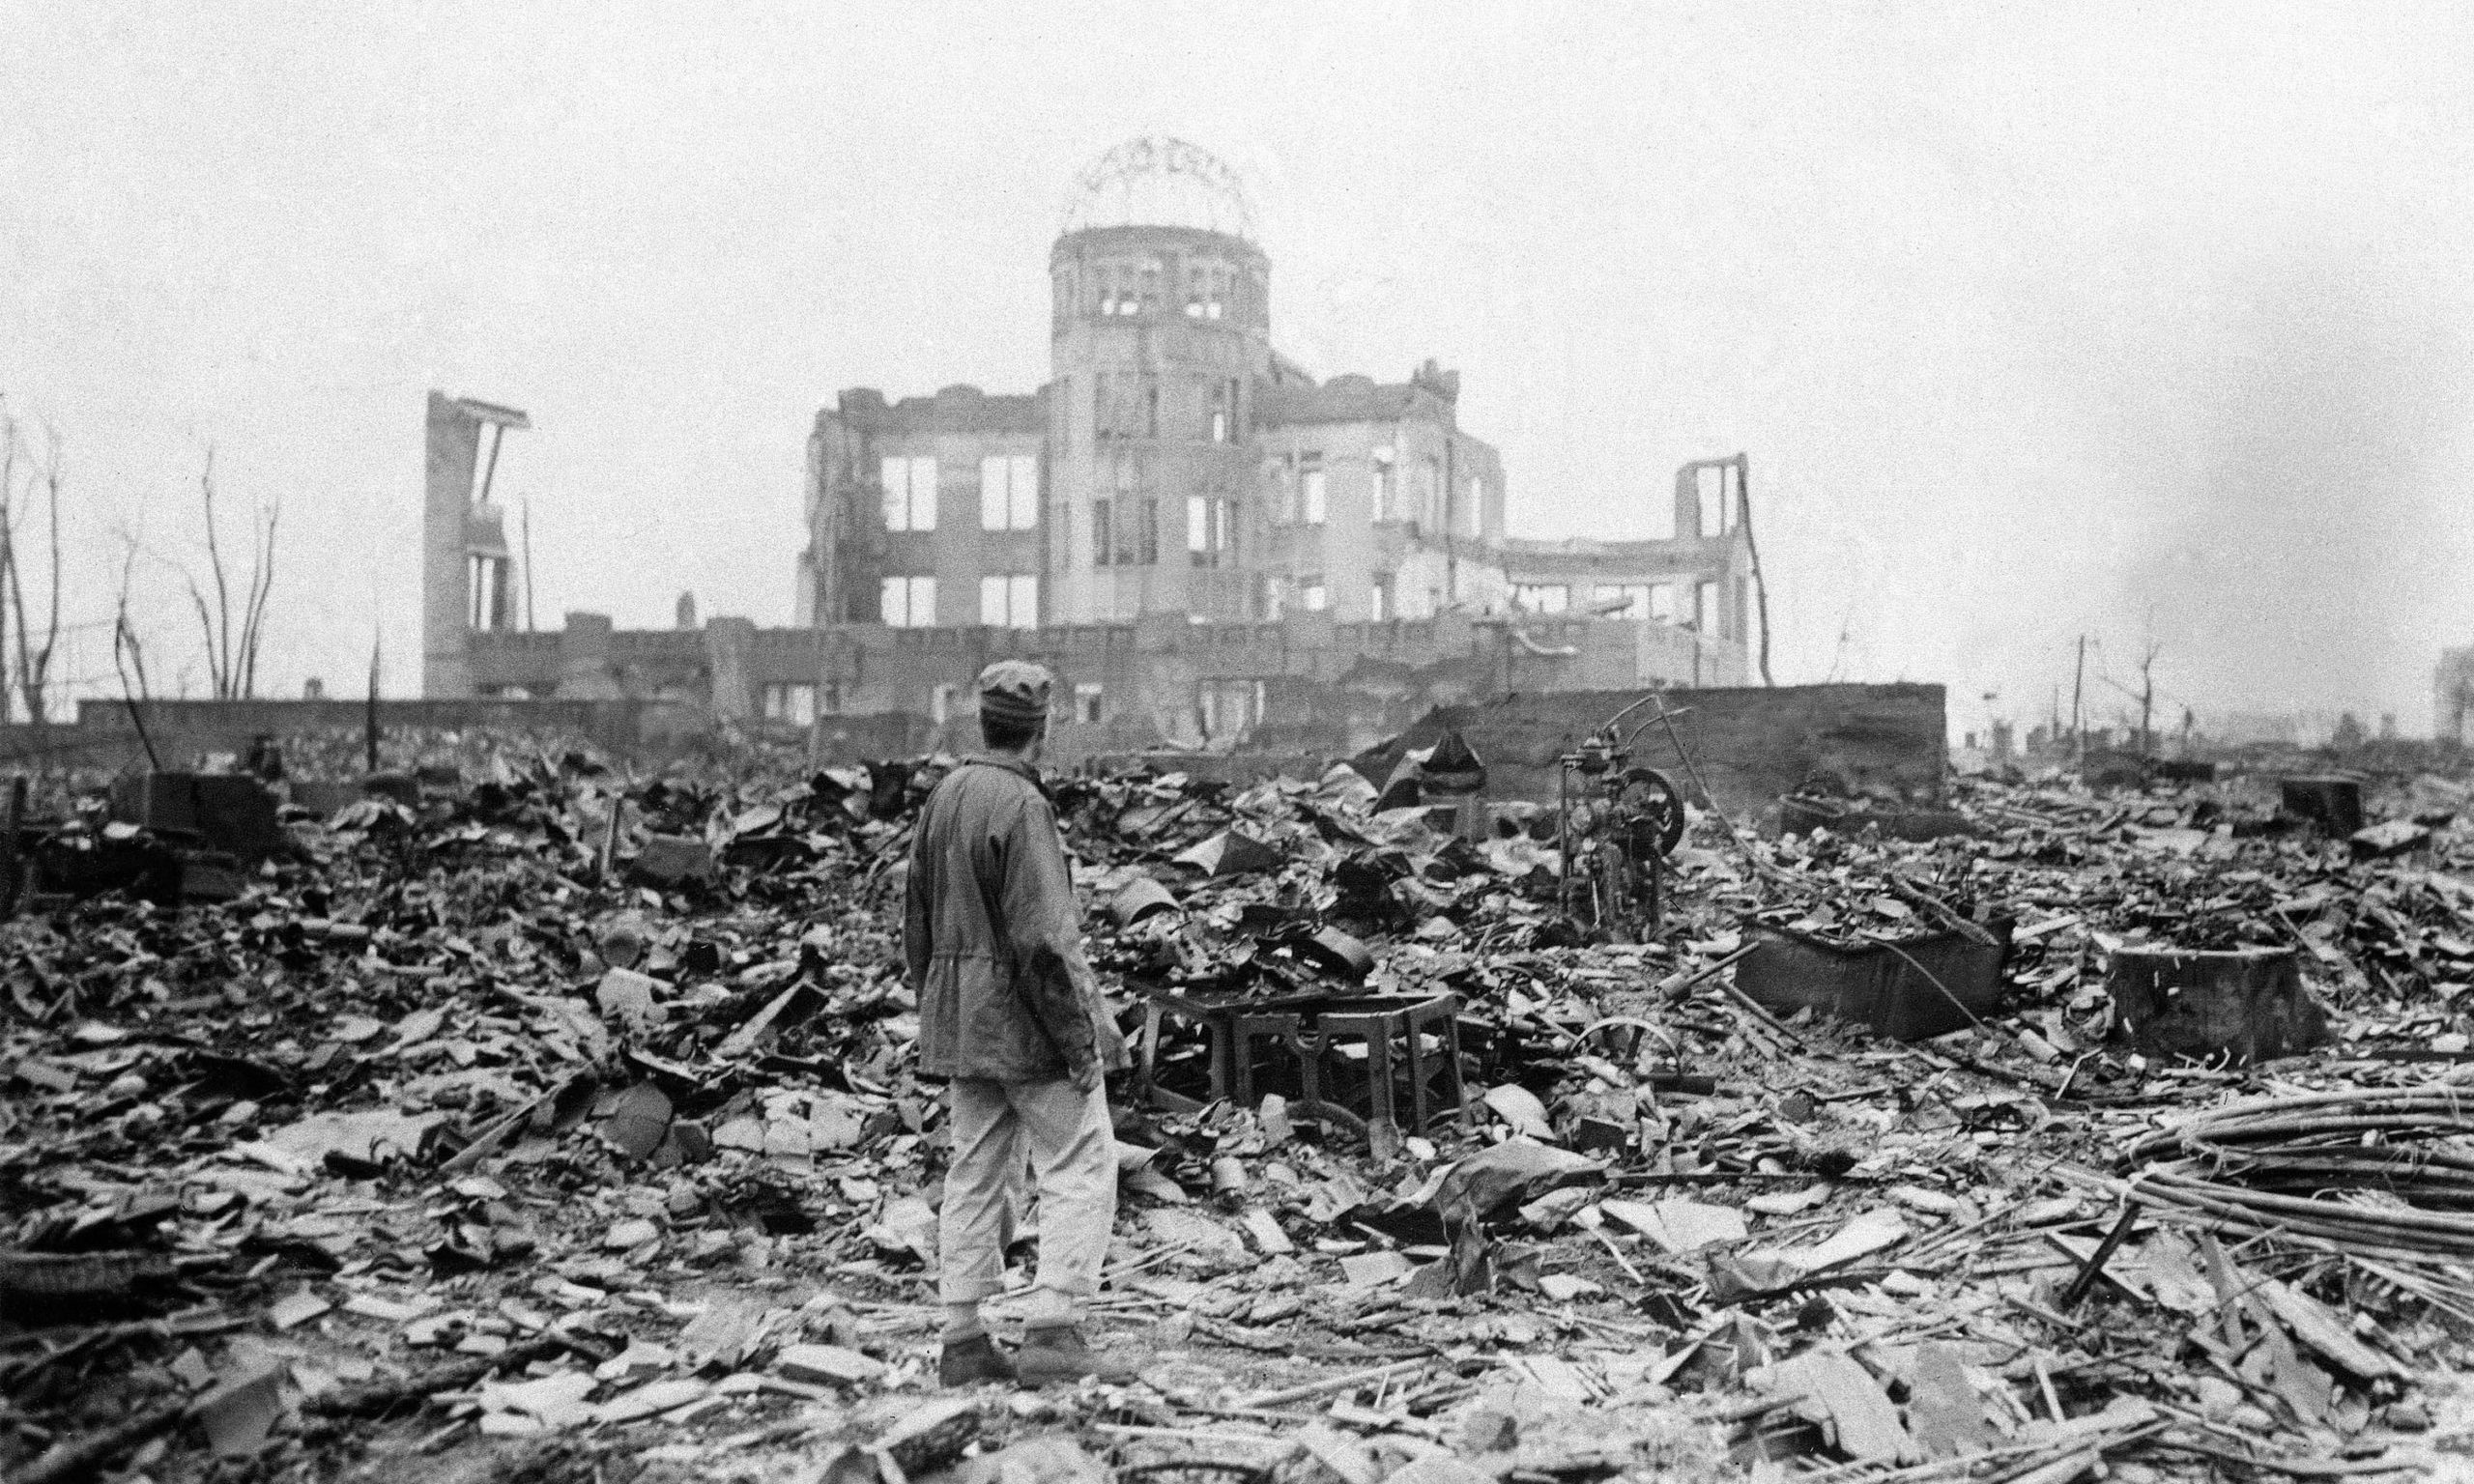 An allied correspondent standing in the rubble in front of the shell of a building that once was a movie theatre in Hiroshima, Japan, a month after the first atomic bomb ever used in warfare was dropped by the US on Monday, August 6, 1945.